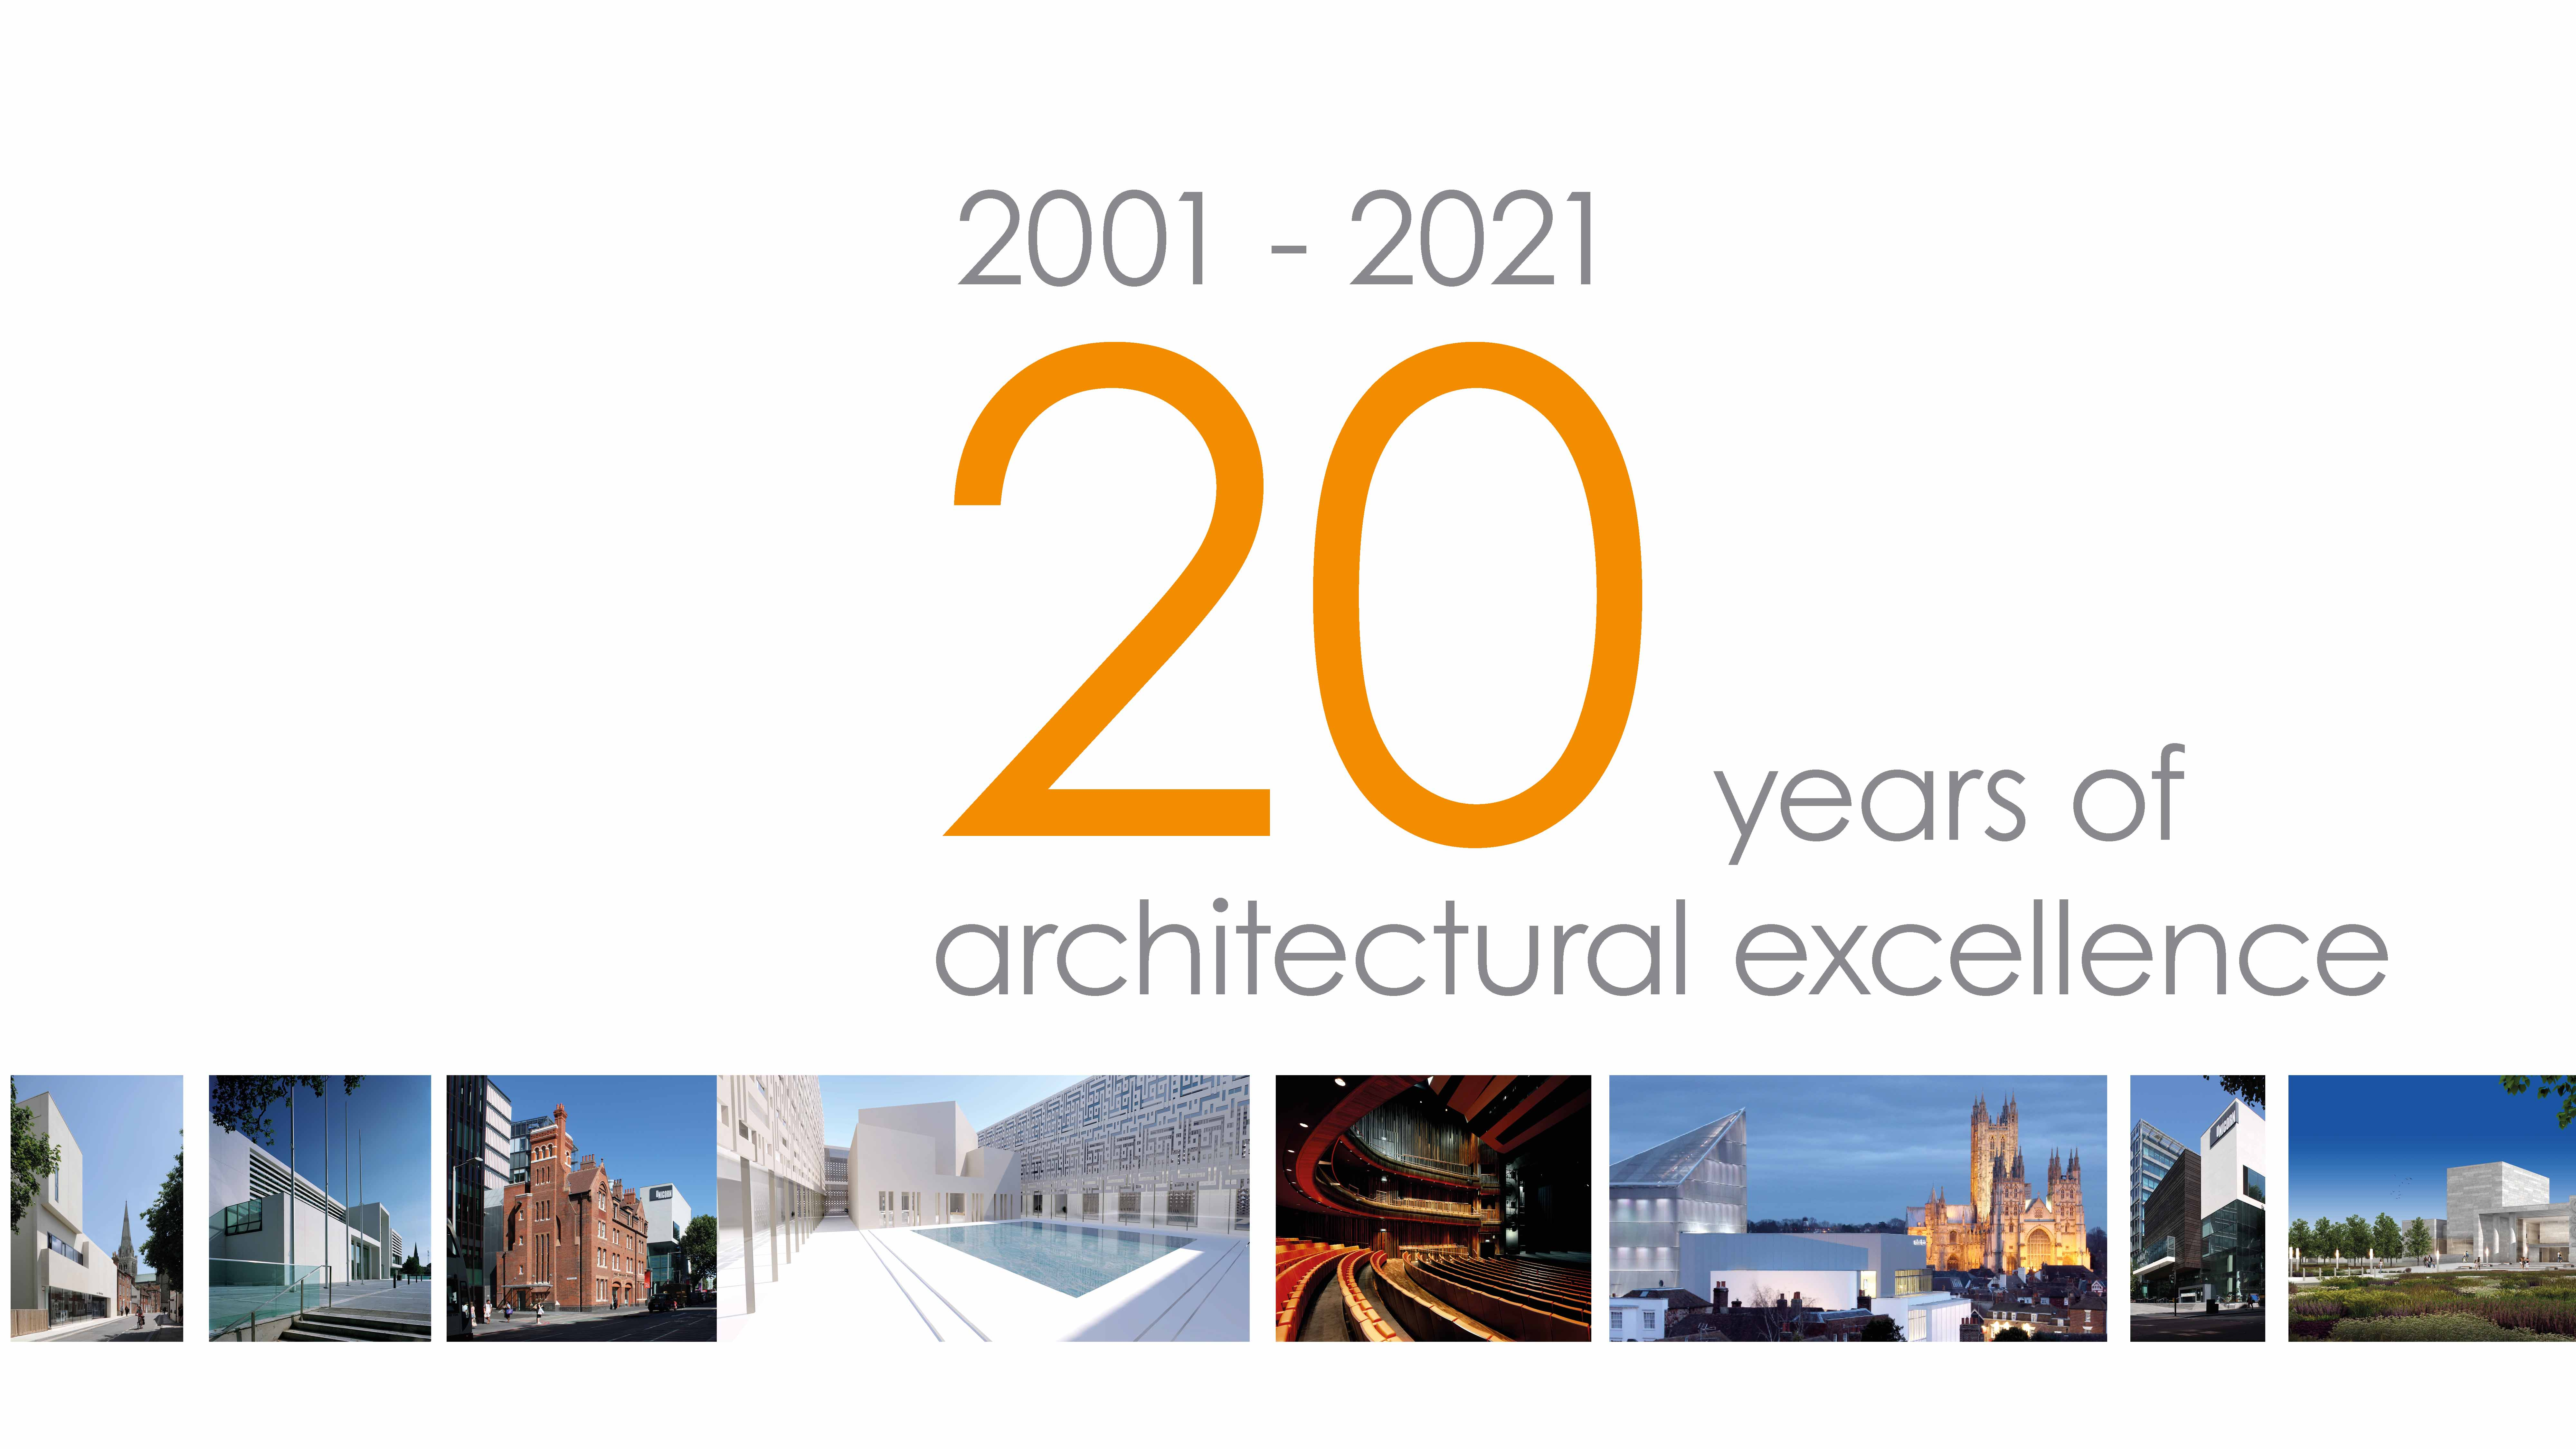 keith williams architects celebrate 20 years of architectural practice